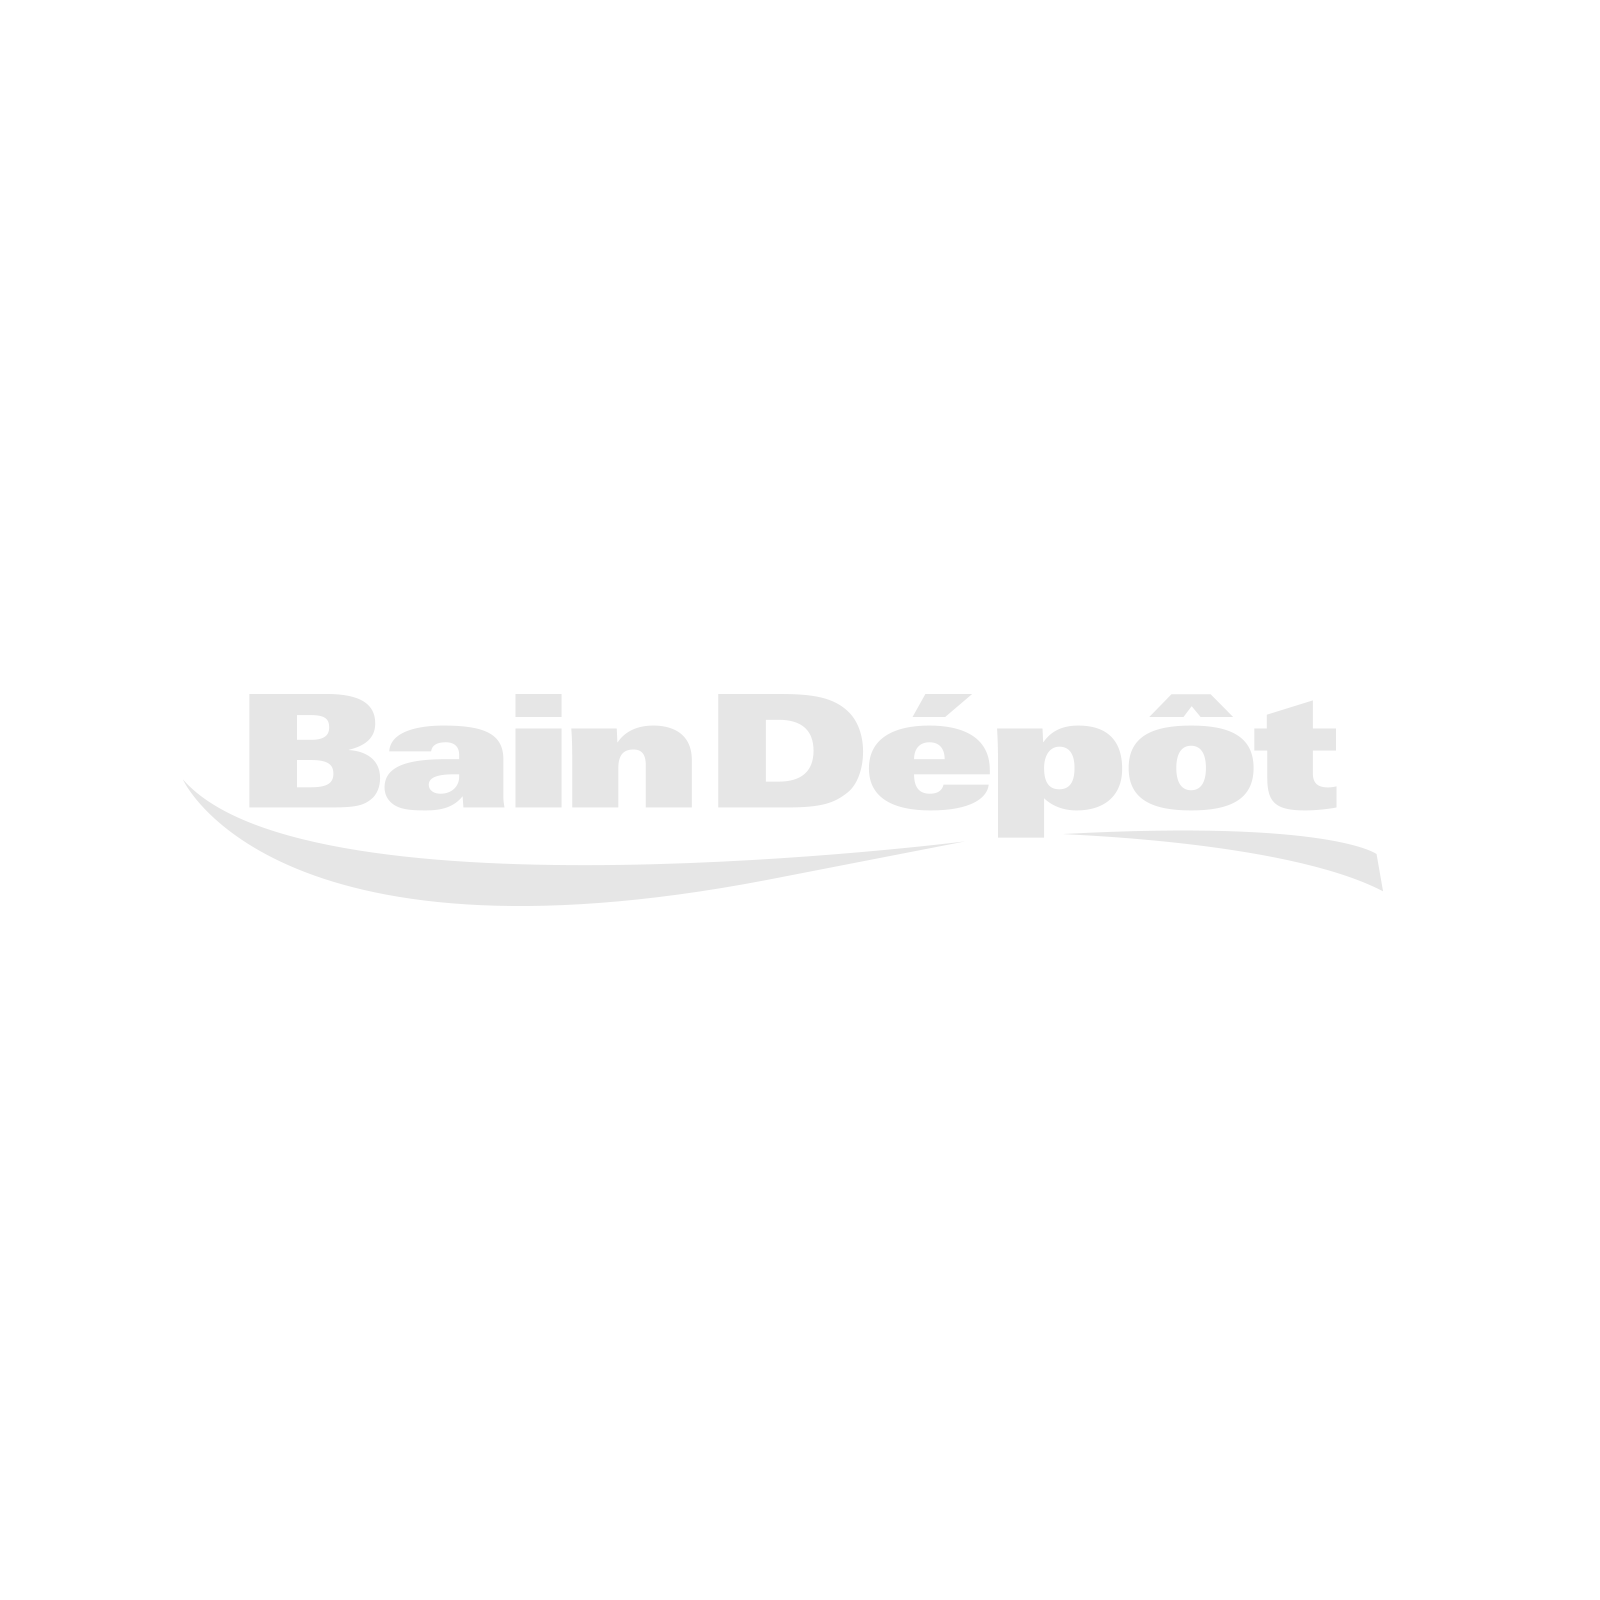 "DUO ILAN 59"" black freestanding bathtub with rounded matte black freestanding faucet"